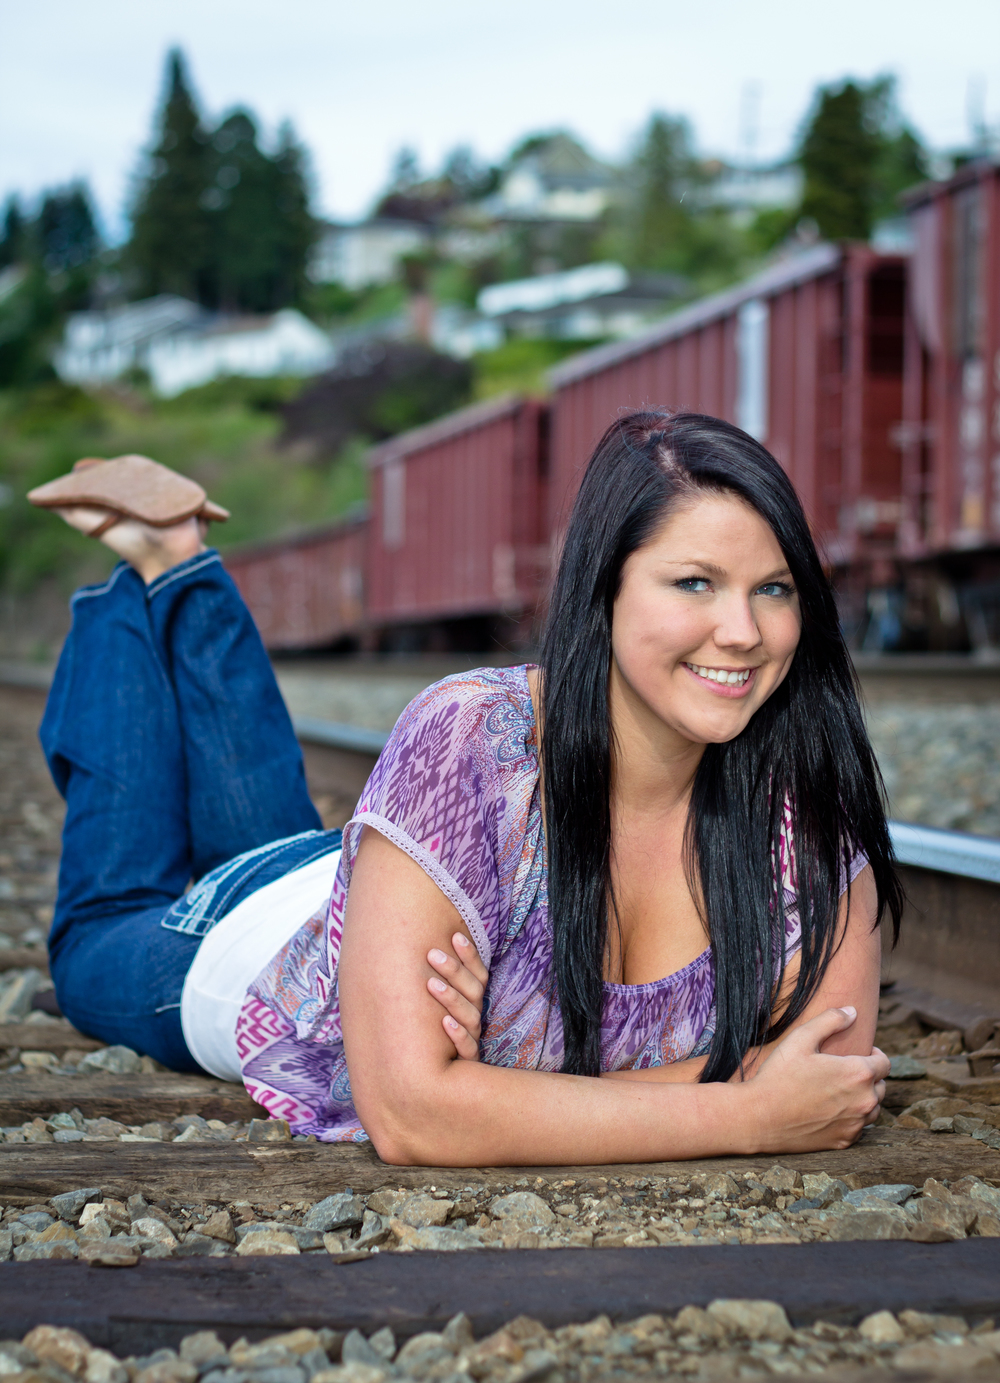 Hailey - Marysville Pilchuck High School Senior